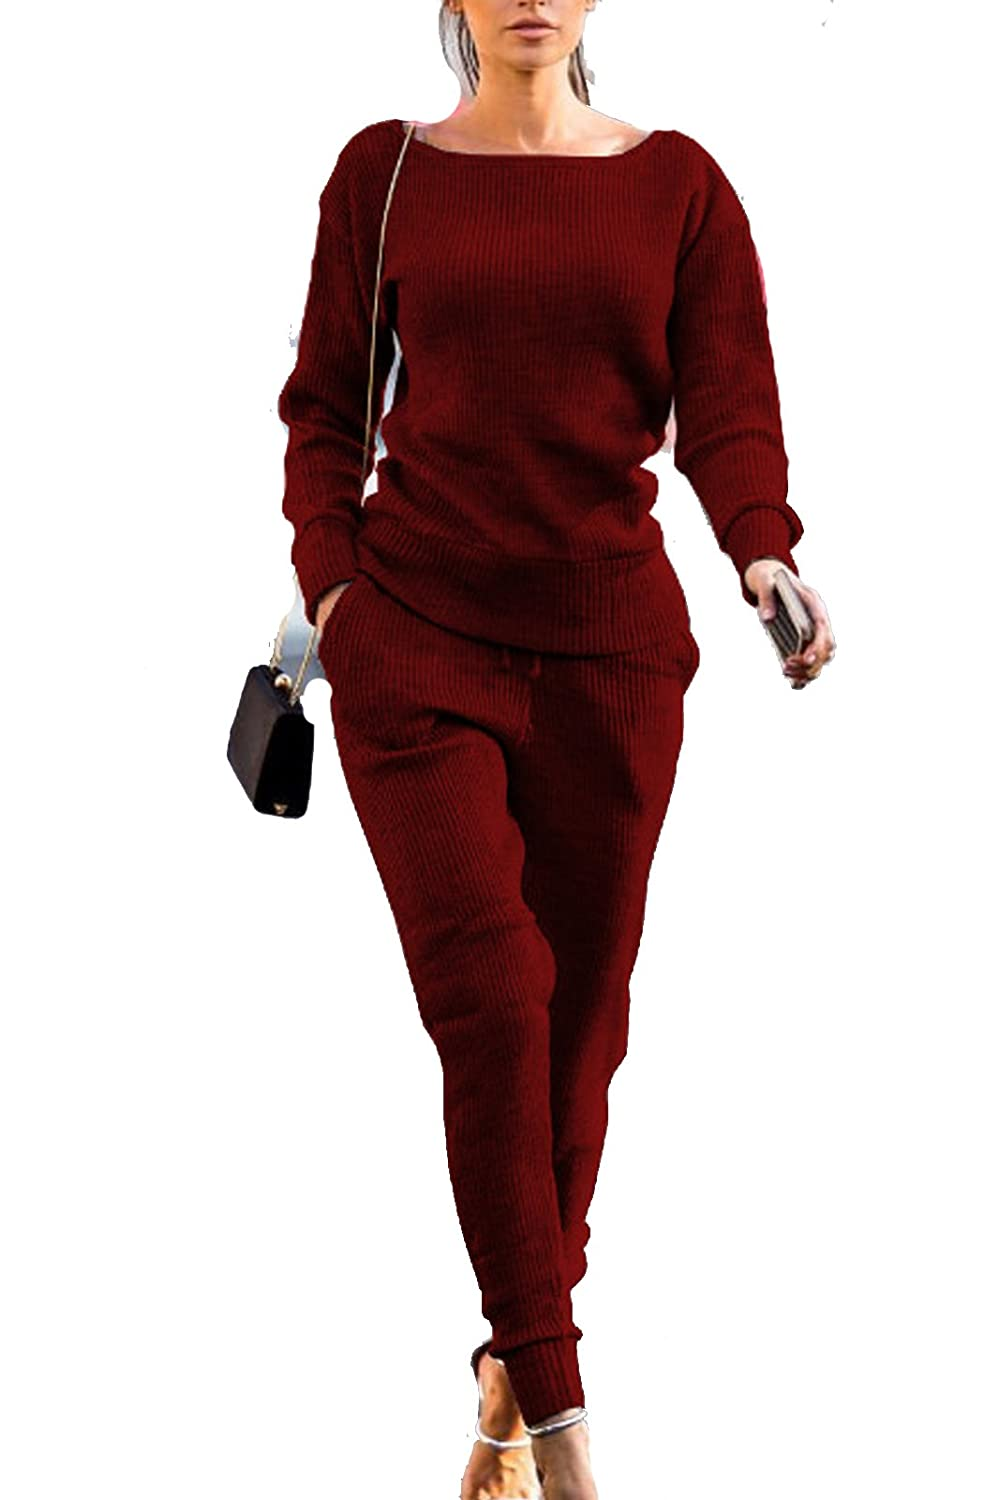 Leezeshaw Womens Winter Fall Rib-knit Pullover Sweater Top & Long Pants 2Pcs Tracksuit Set Outfit E11DY 17904-1